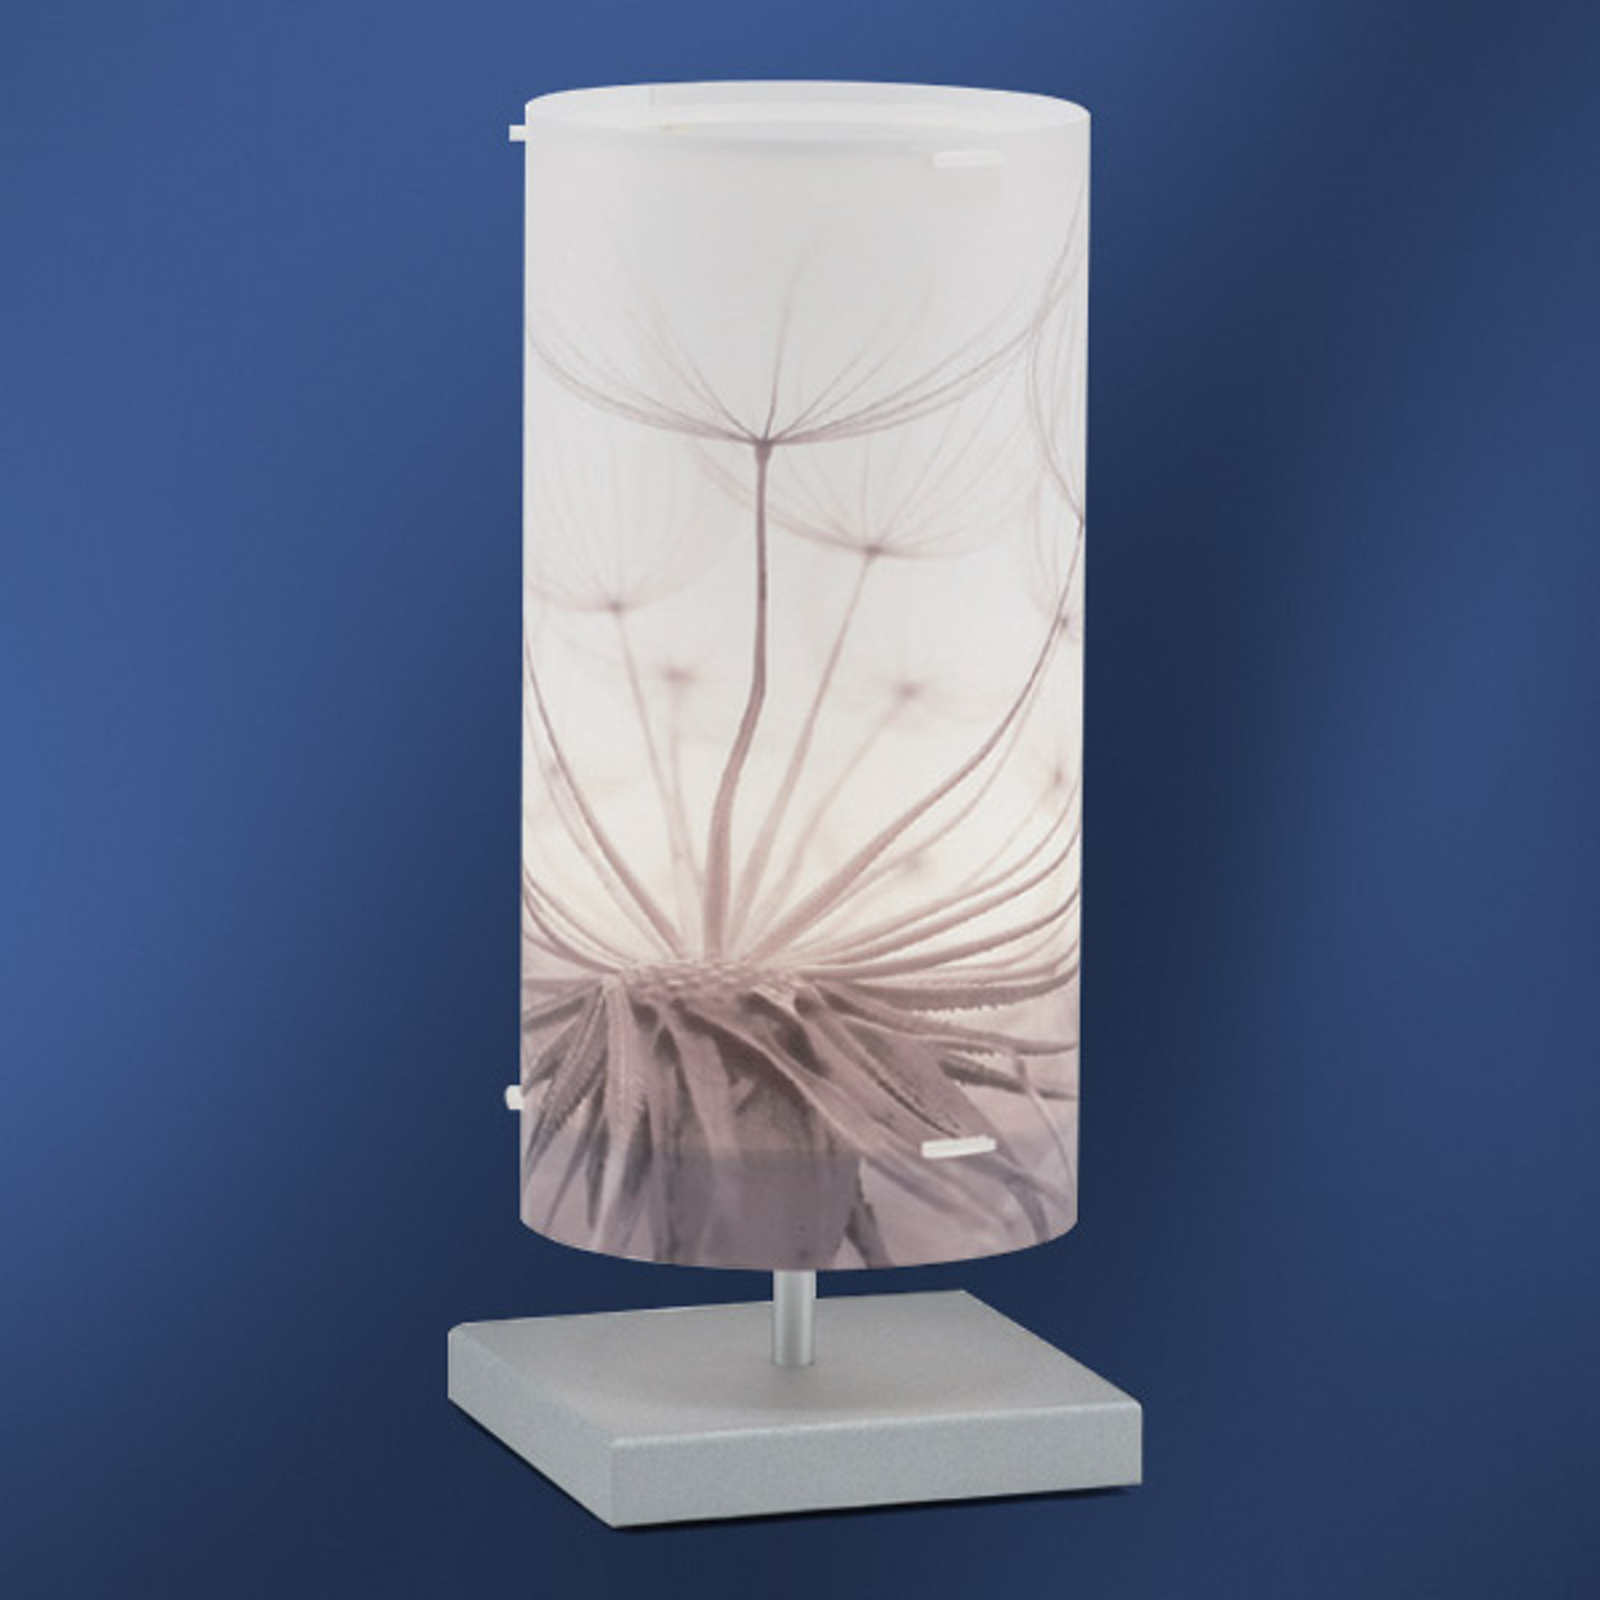 Dandelion- table lamp in natural design_1056091_1